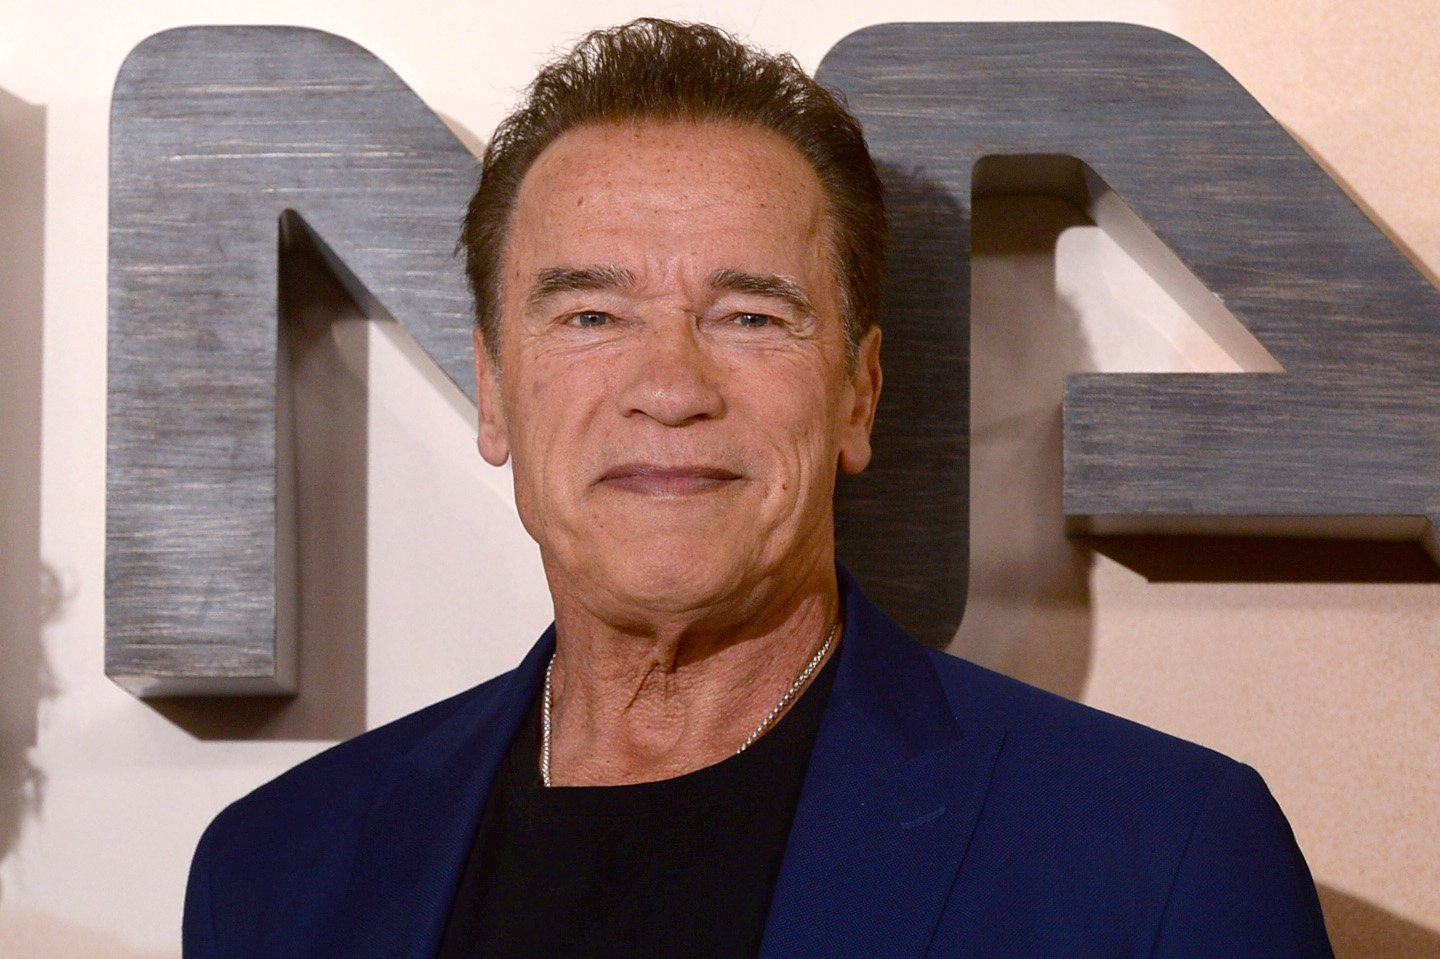 """Arnold Schwarzenegger attends the """"Terminator: Dark Fate"""" photocall on October 17, 2019 in London, England 